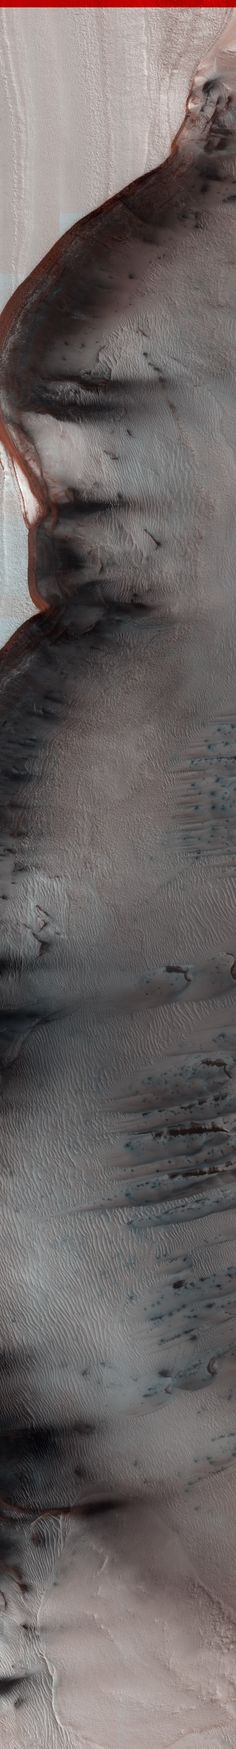 NASA/JPL/University of Arizona MARS North Polar Scarp in Abalos Undae with Basal Exposure and Dunes